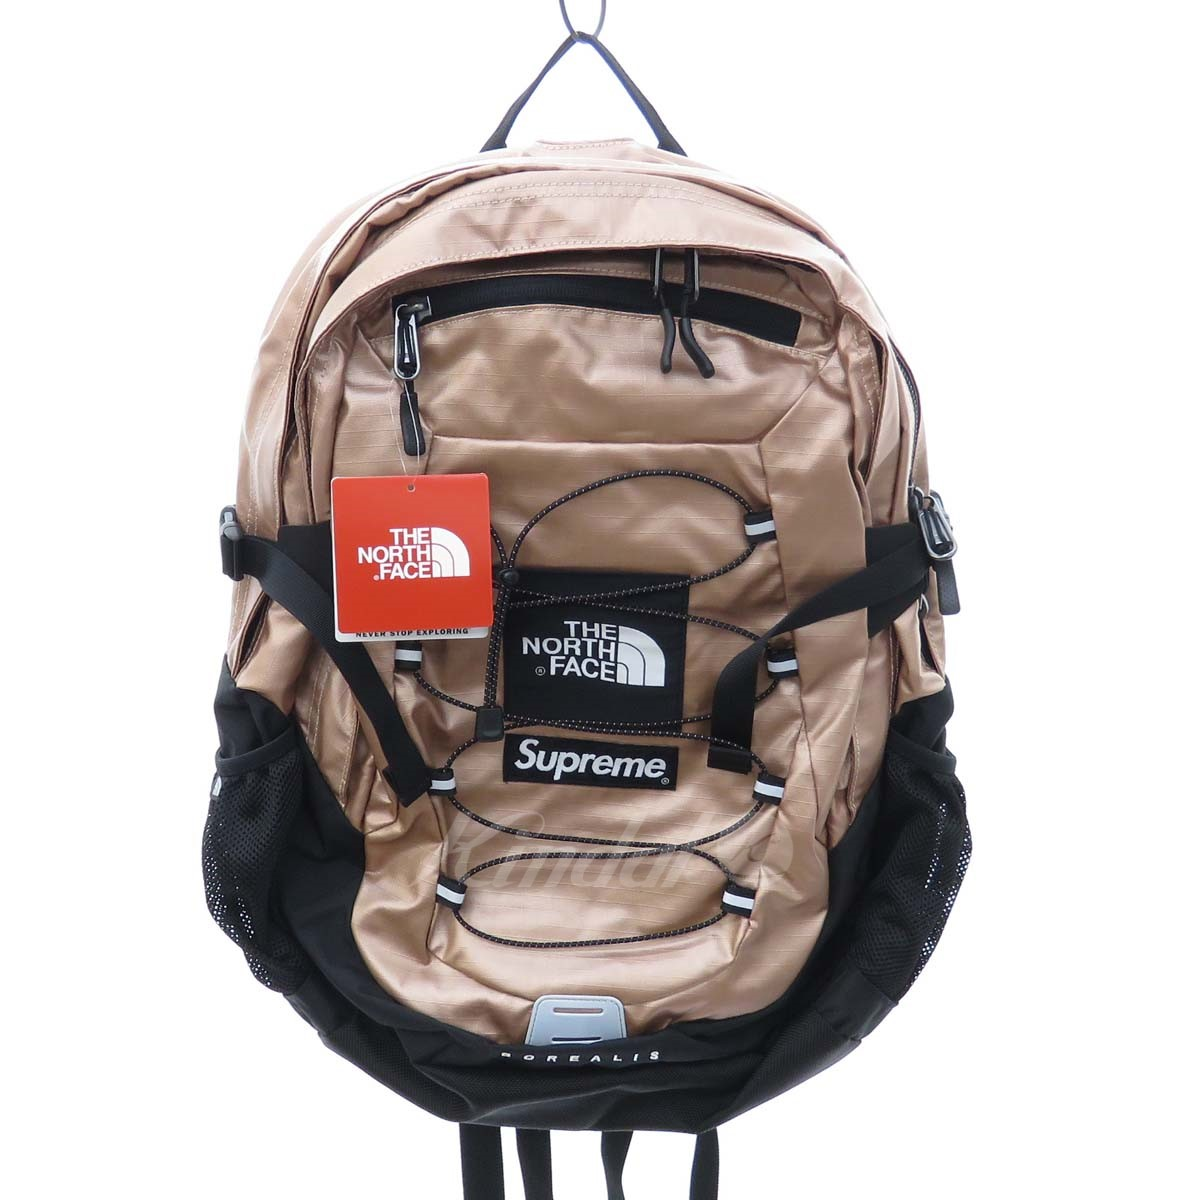 afc1ddaa2 Supreme X THE NORTH FACE 18SS Metallic Borealis Backpack backpack Rose gold  (シュプリーム X ザノースフェイス)